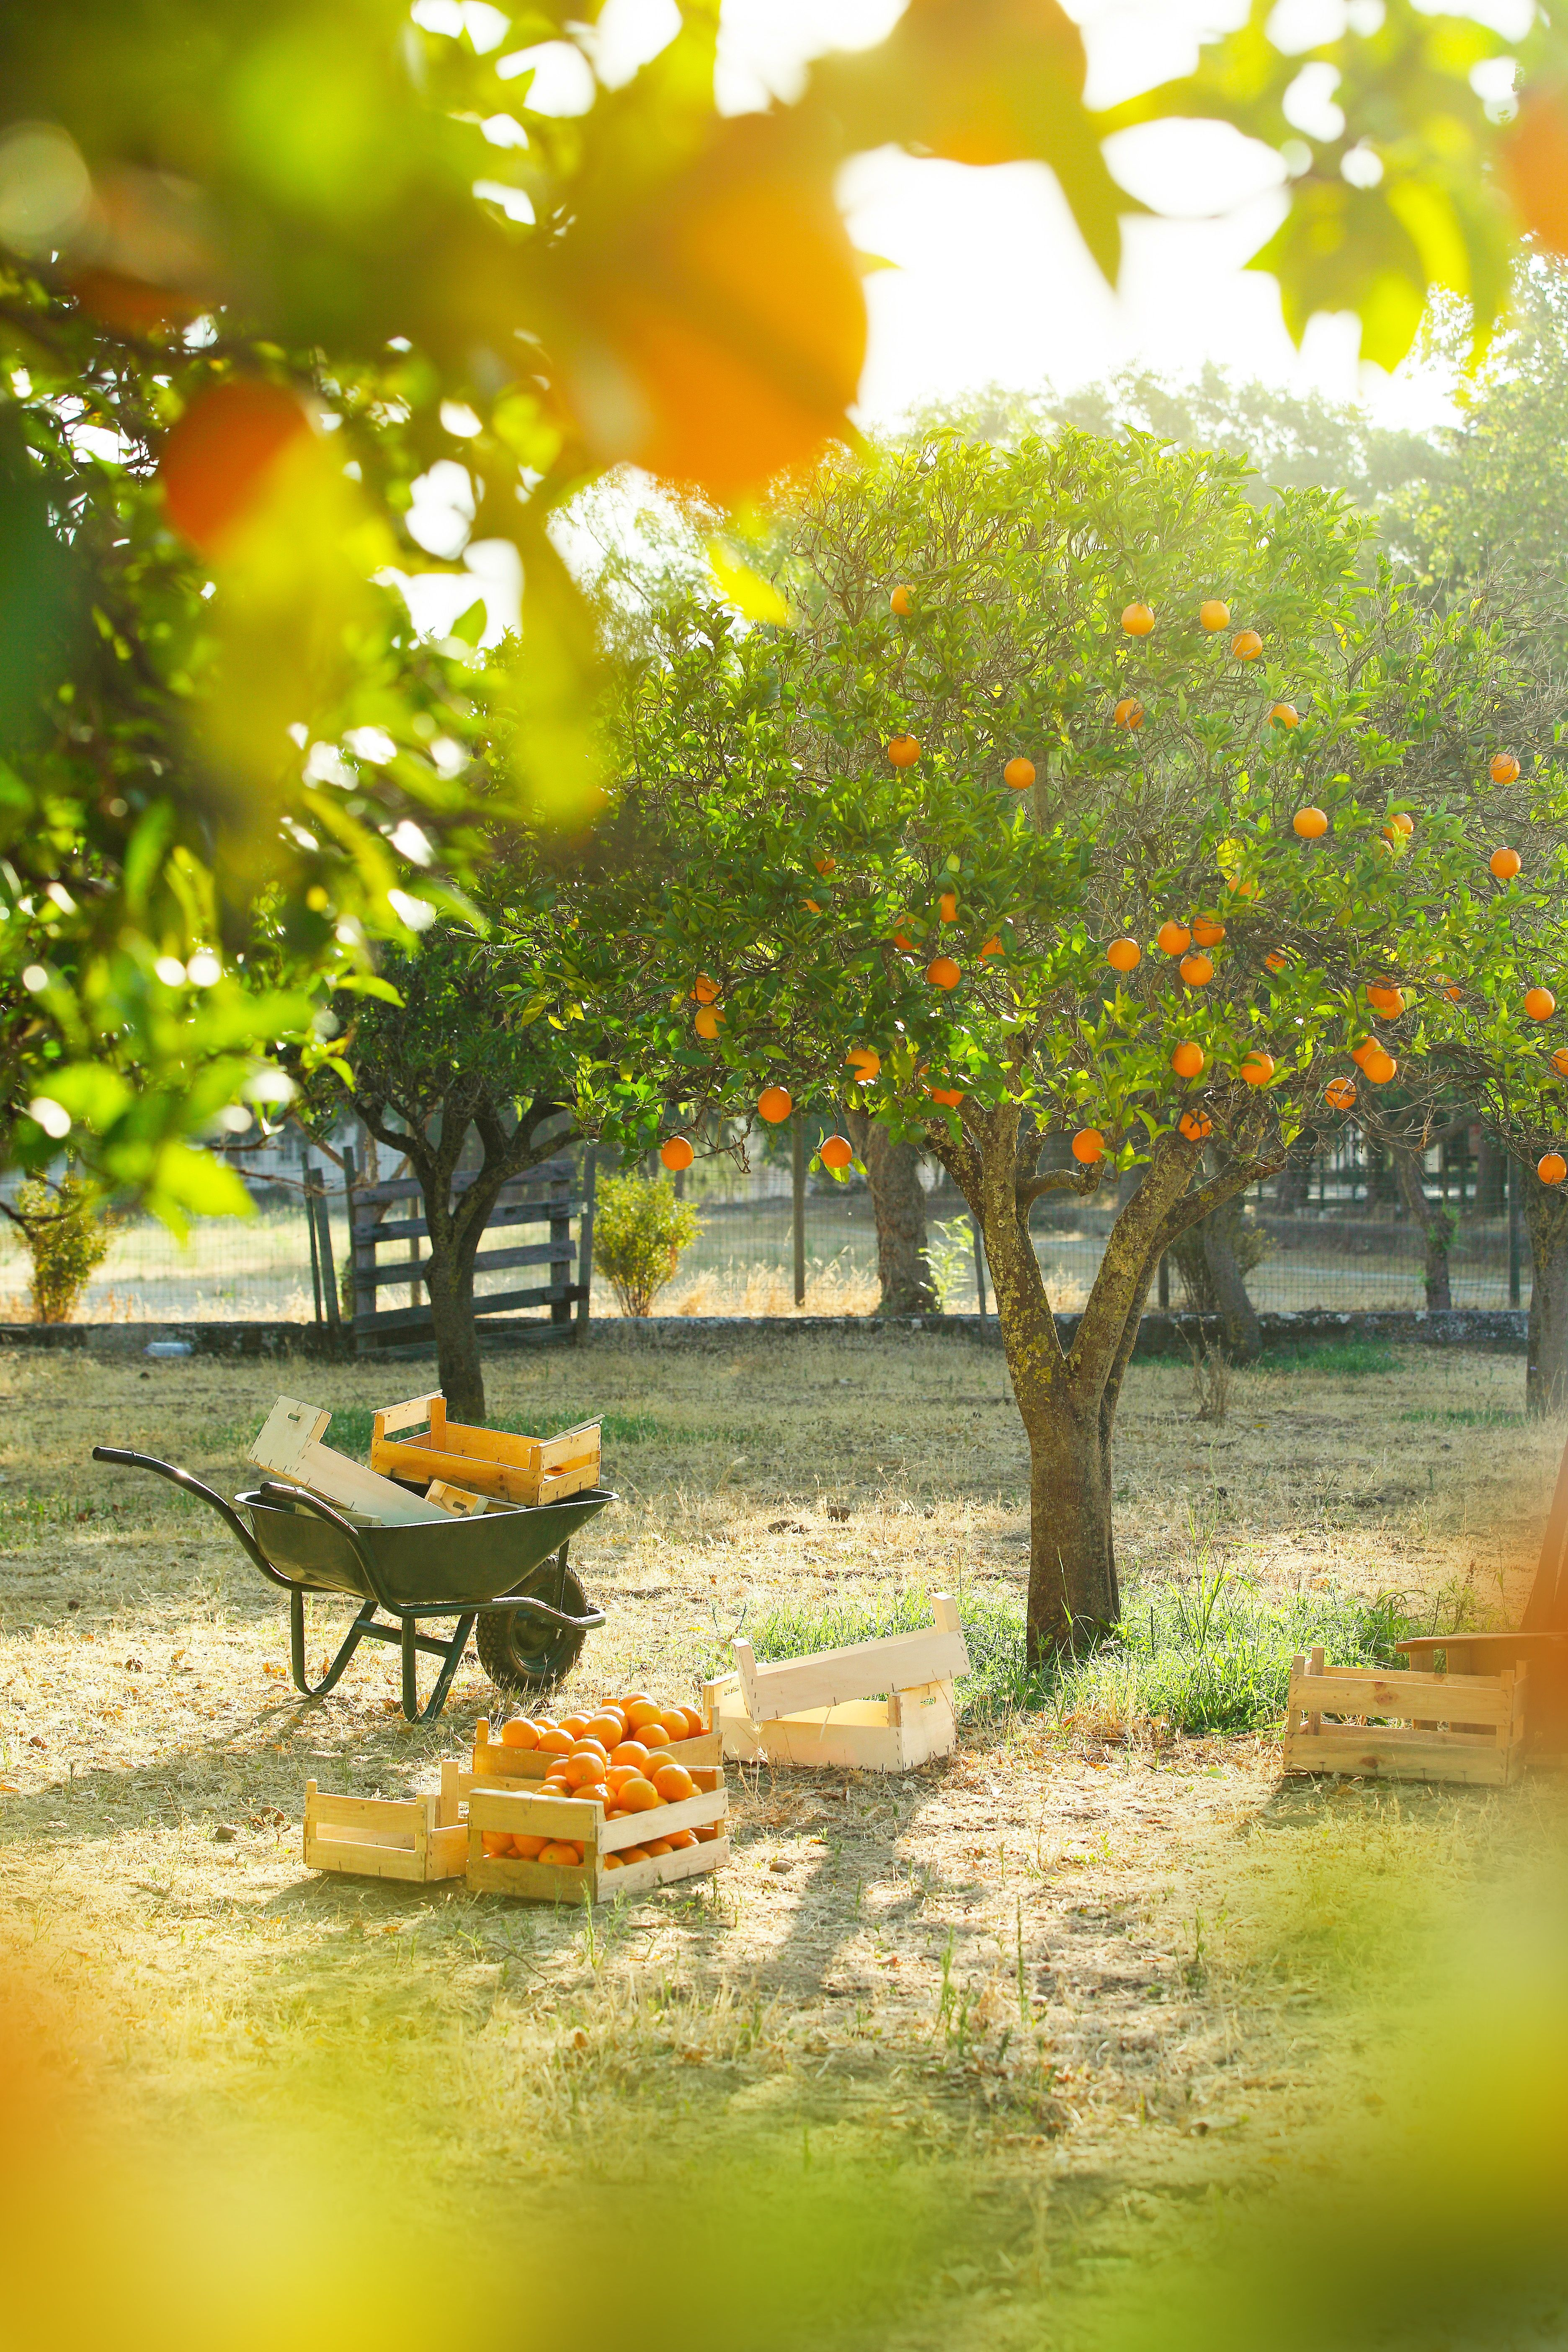 Growing Fruit Trees In New England Fruit Trees Fruit Bearing Trees Citrus Trees